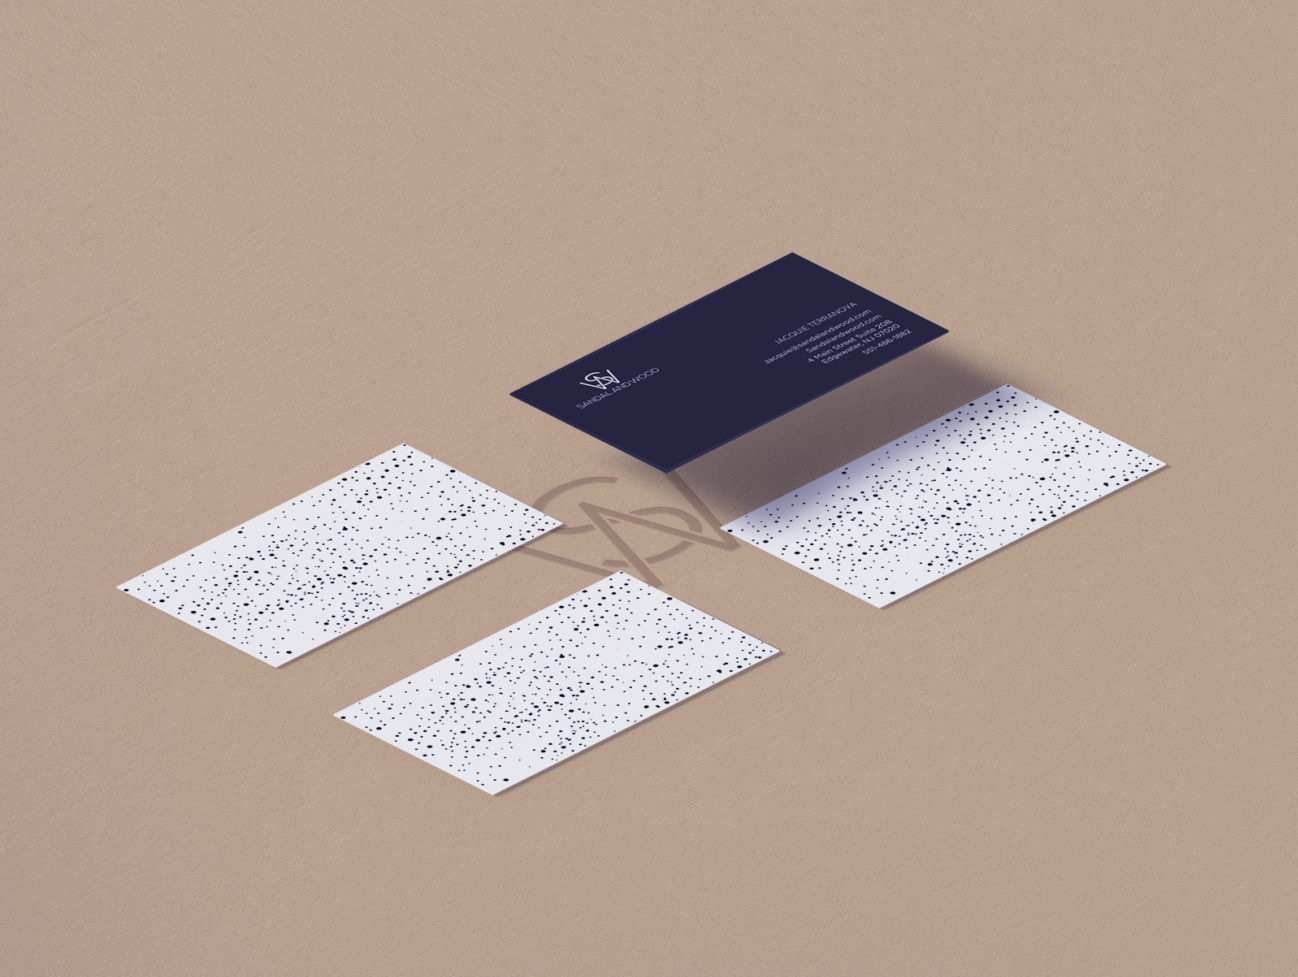 Branding & Web Design for Sandal & Wood business card typography logo design identity digital logo illustration branding